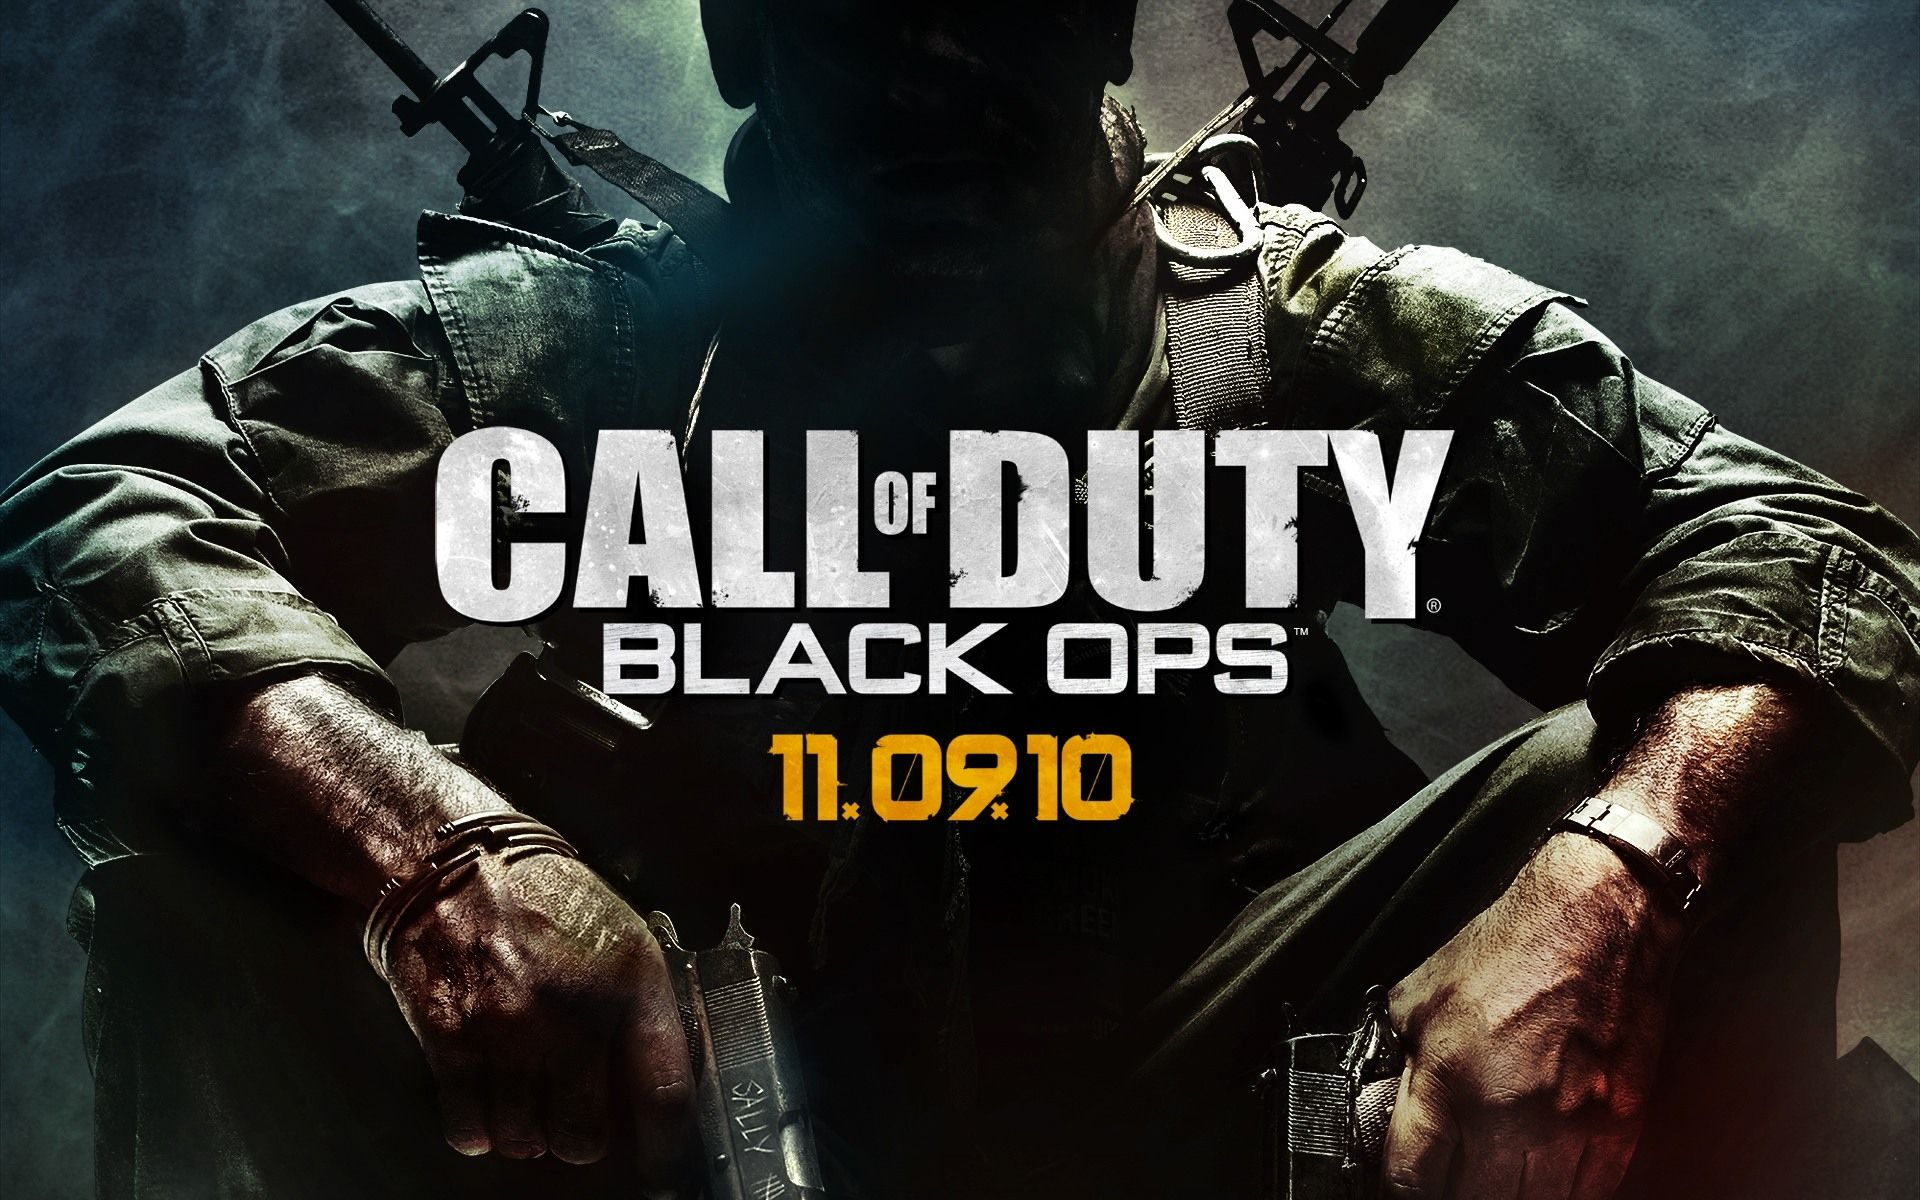 call of duty black ops 2 skidrow rar password download